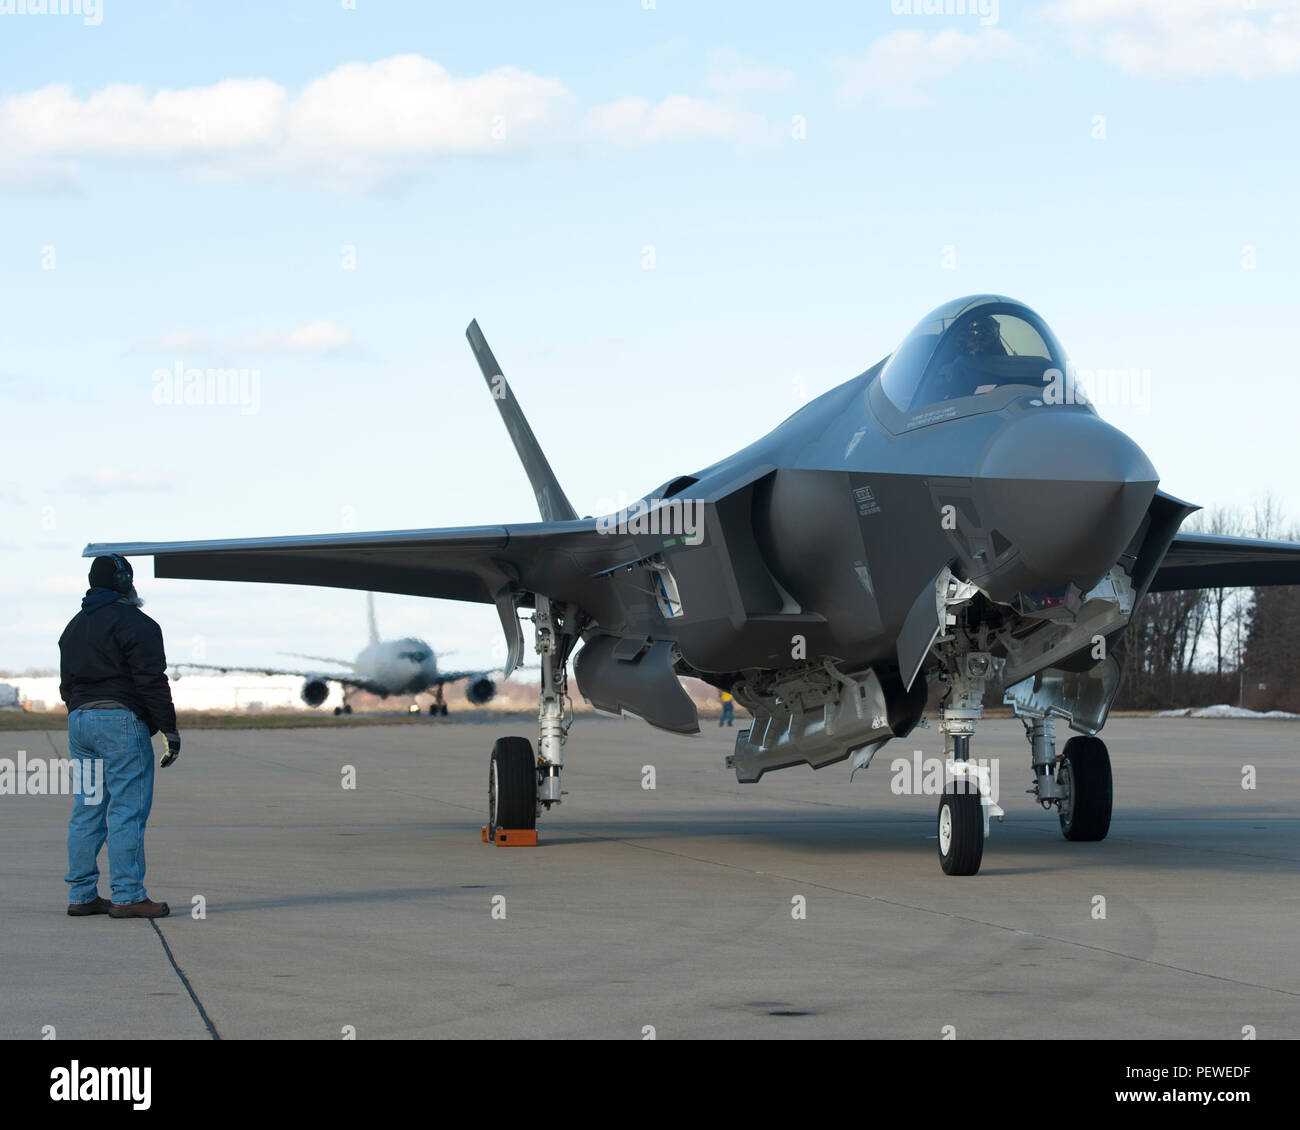 160205-O-ZZ999-924 NAS Patuxent River (February 5, 2016) A member of the Pax River Integrated Test Force (ITF) stands at the ready as Italian Air Force (Aeronautica Militare) aircraft AL-1 — the first F-35 Lightning II international jet fully built overseas at the Cameri Final Assembly & Check-Out (FACO) facility at Cameri Air Base, Italy — arrives at the Navy's Electromagnetic Environmental Effects (EEE) test and evaluation laboratory aboard Naval Air Station (NAS) Patuxent River on Feb. 5, 2016. (U.S. Navy photo courtesy Andy Wolfe/Released) - Stock Image